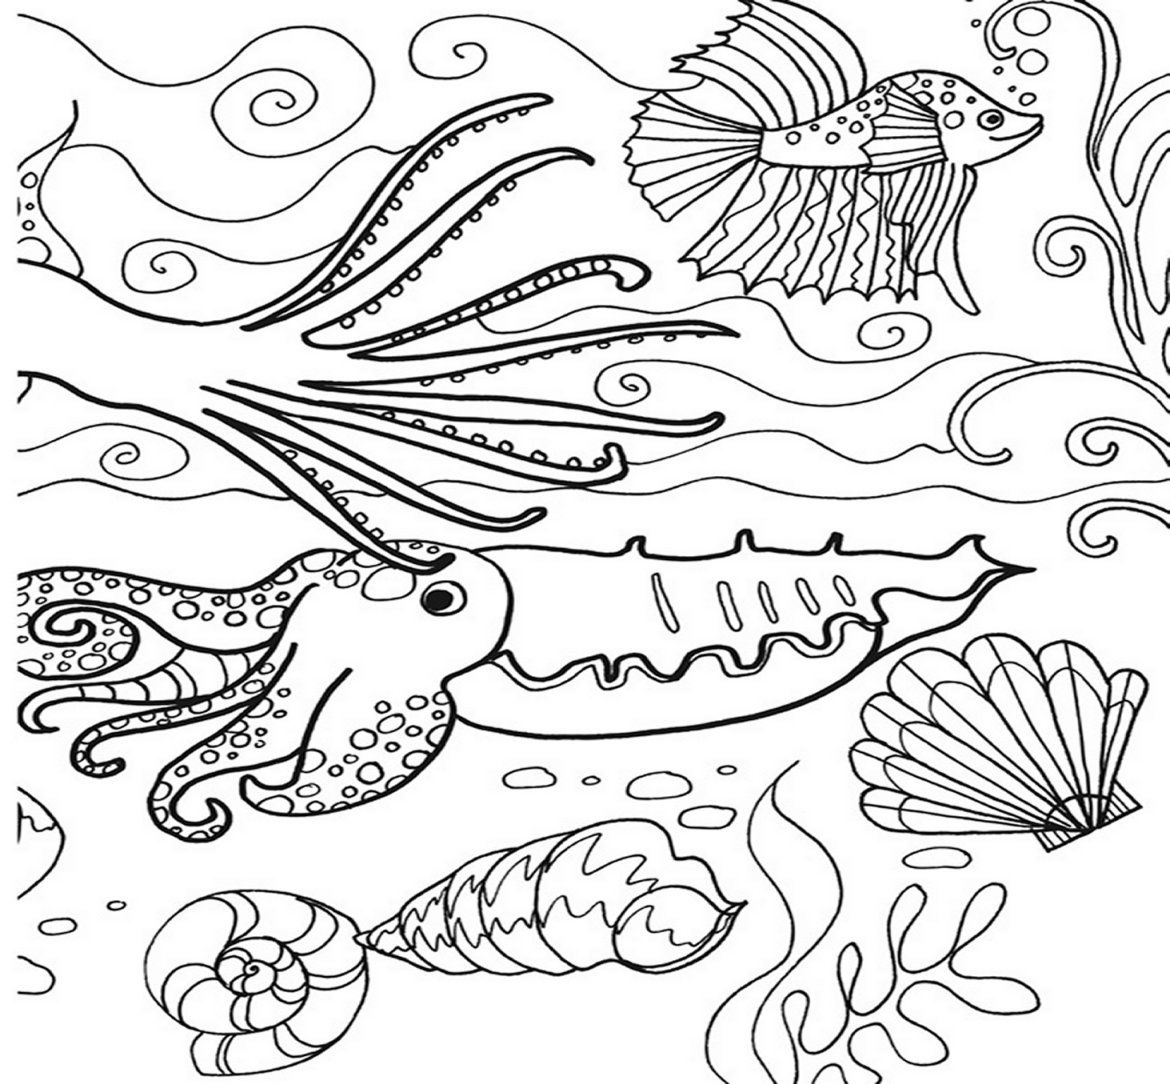 Picture coloring page with under the sea | Coloring For Kids | Pinterest